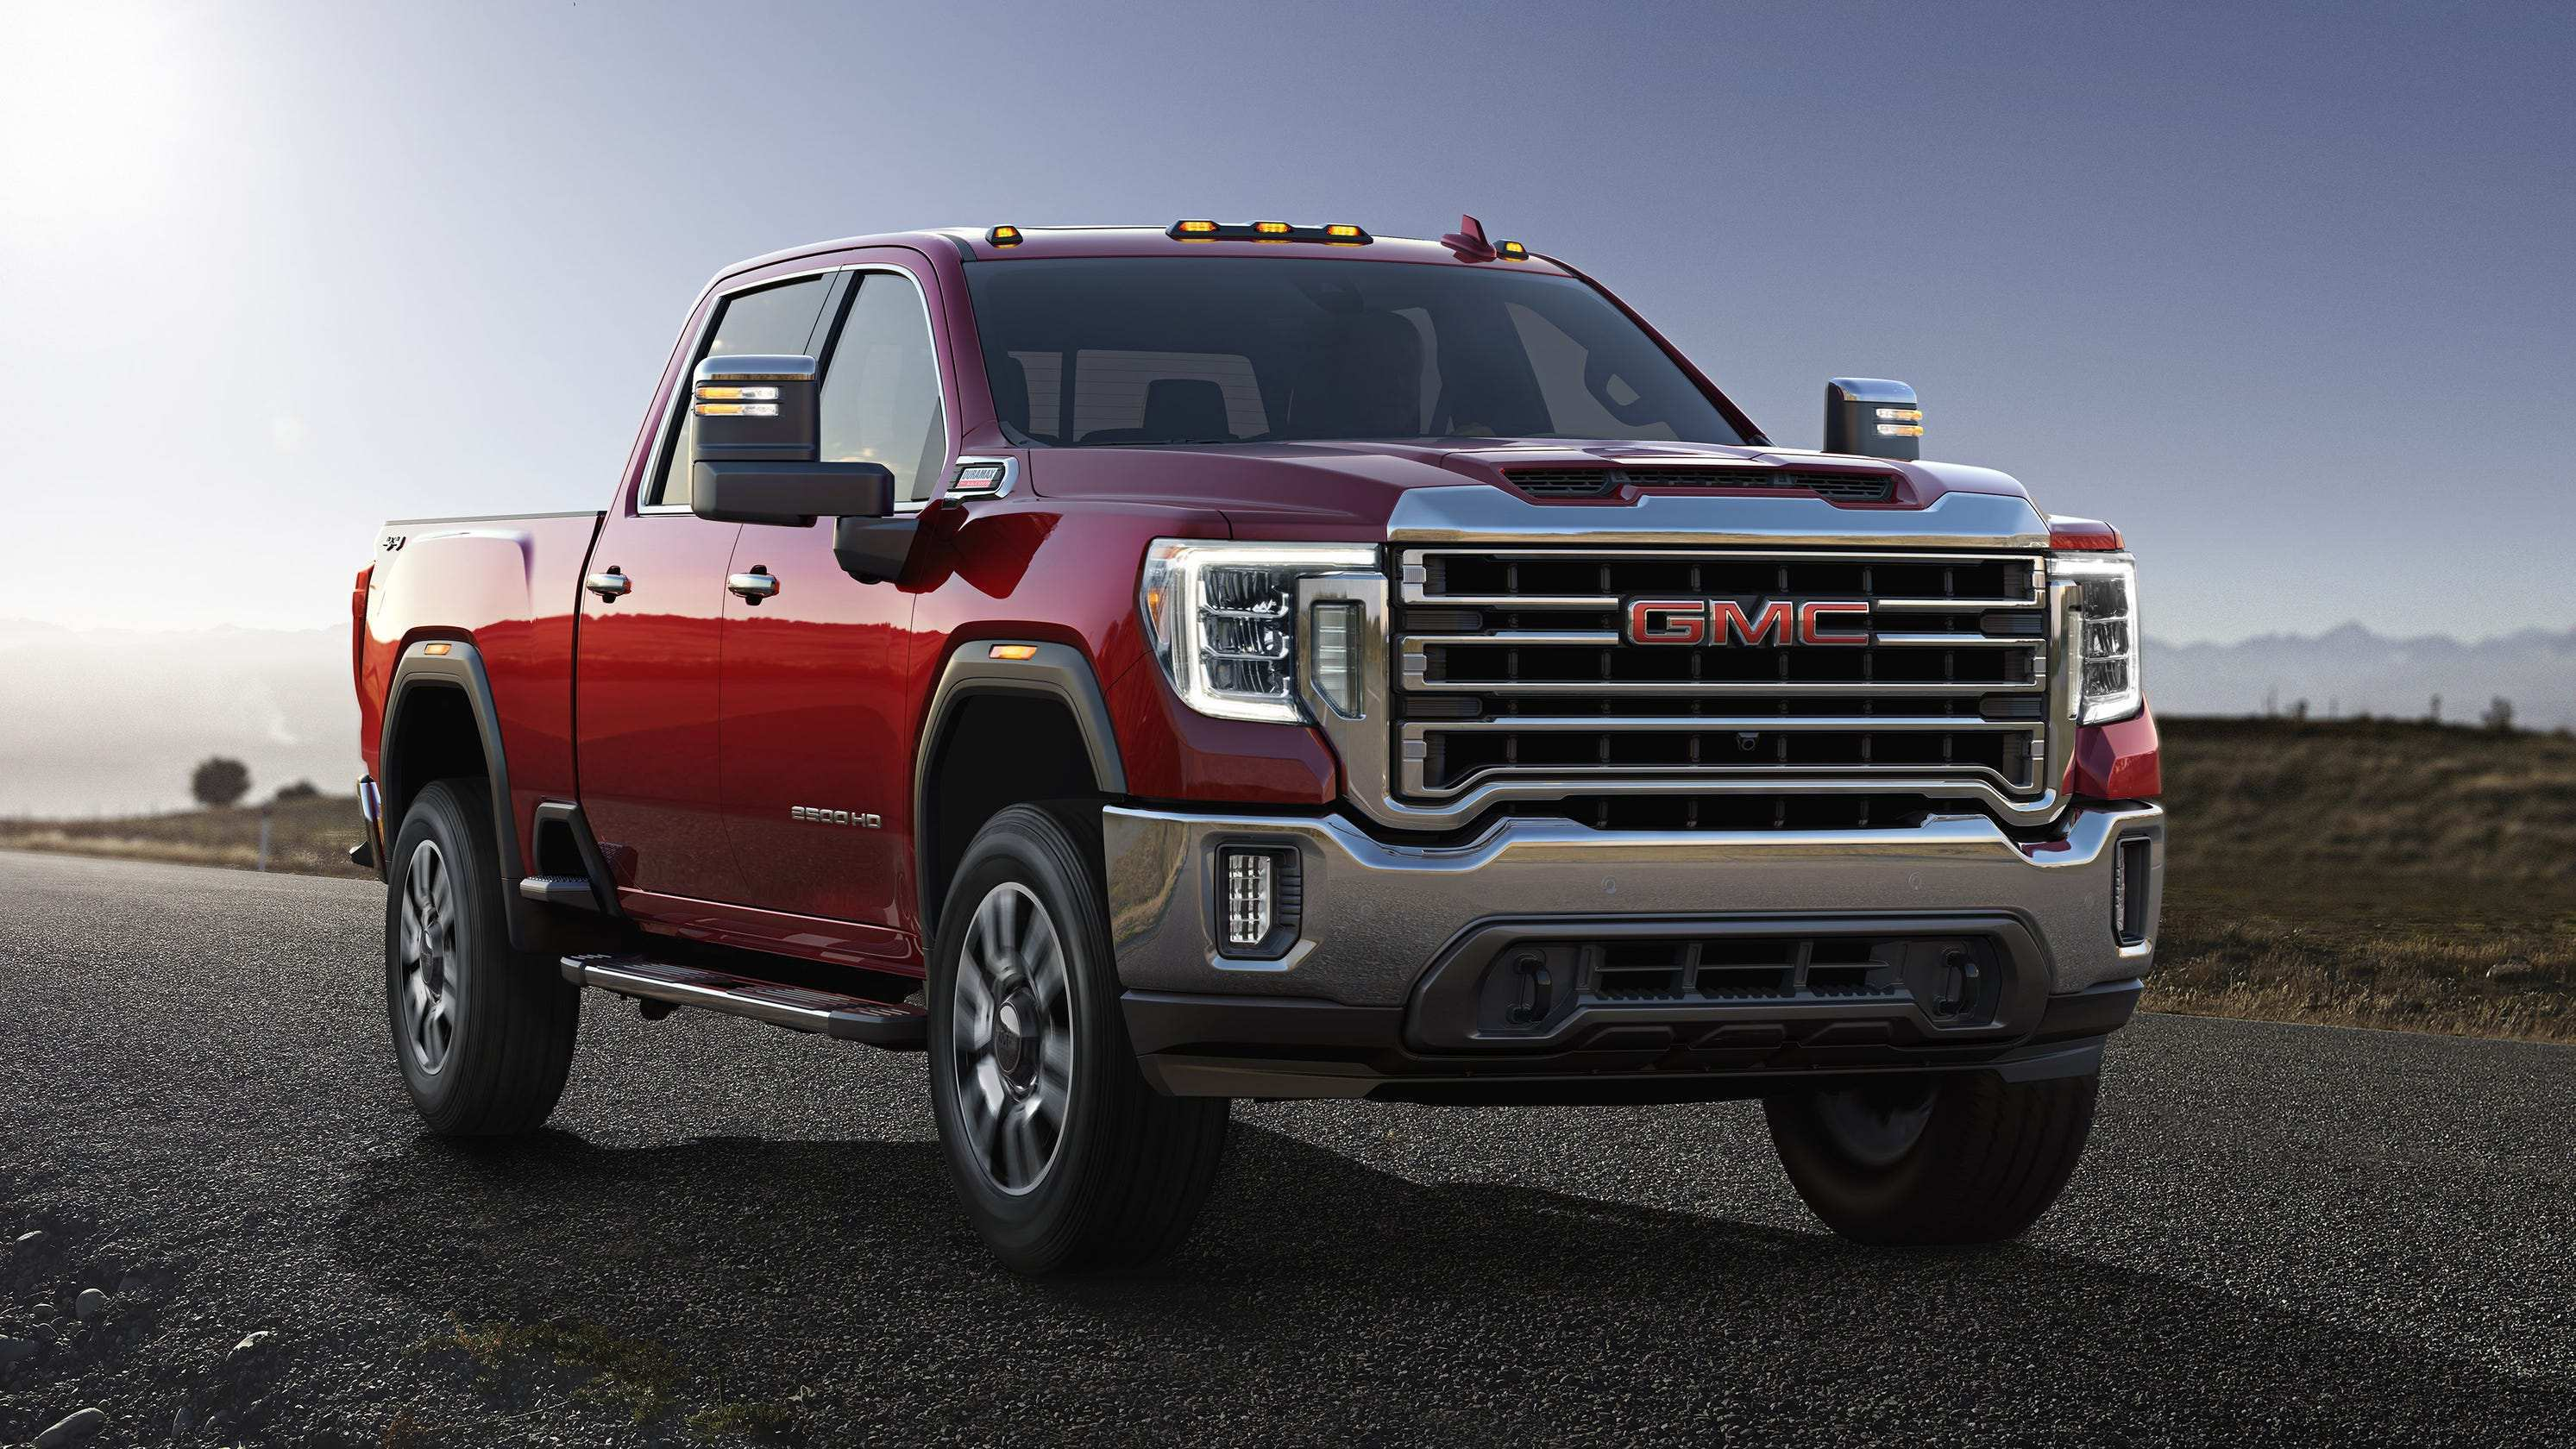 97 Best 2020 GMC 2500 Gas Engine Configurations